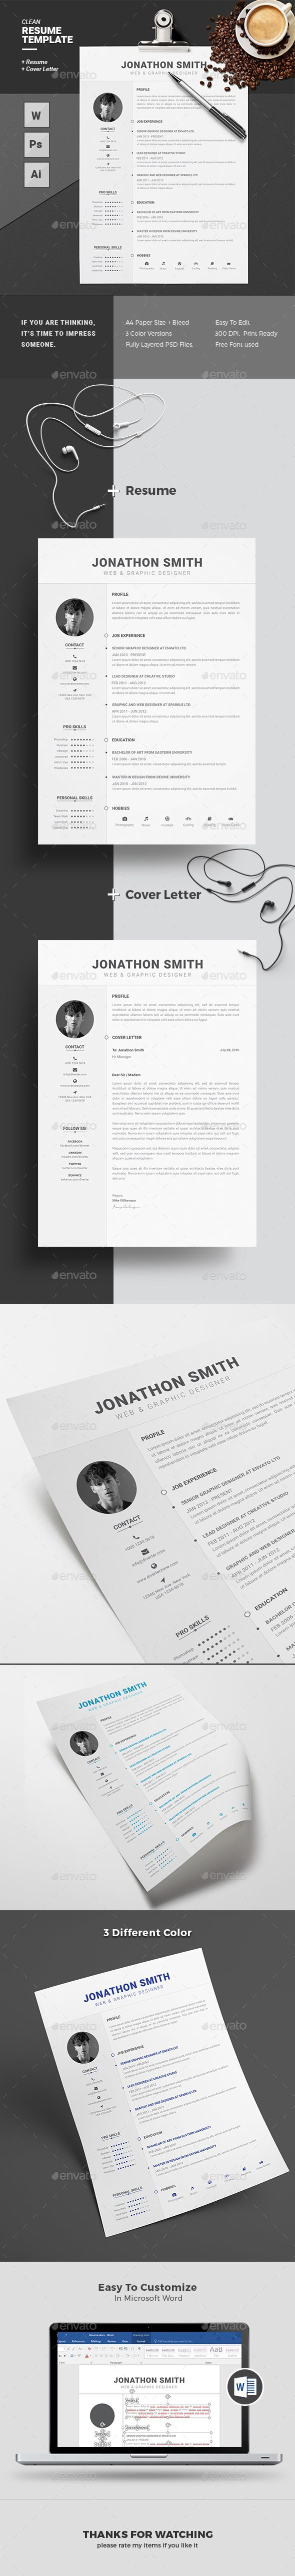 #Resume - Resumes Stationery Downolad here: https://graphicriver.net/item/resume/17315252?ref=classicdesignp